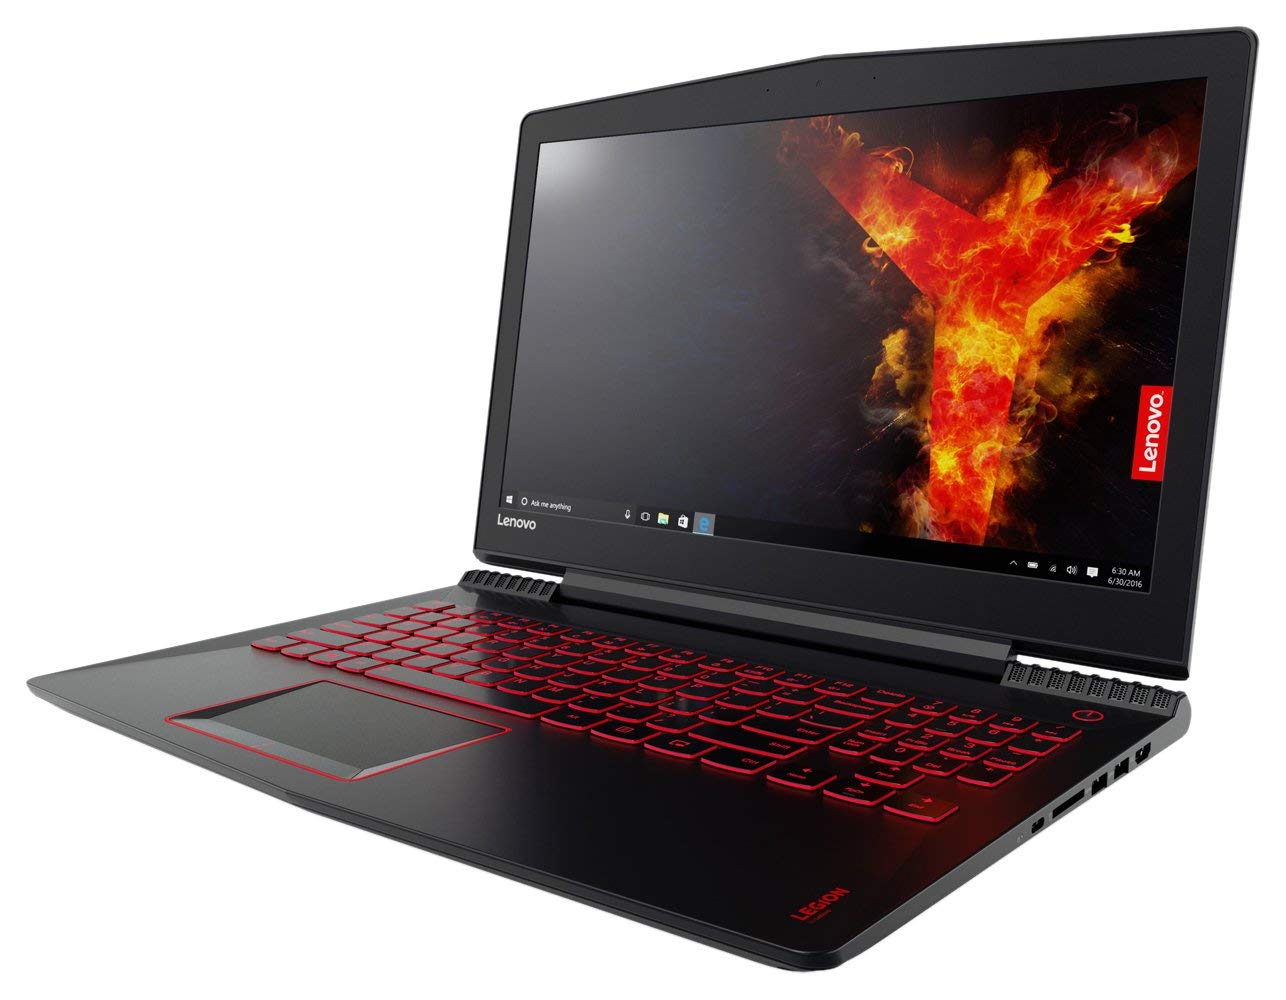 Best Gaming Laptop Under 1000 2020 Best gaming laptops that cost less than $1000